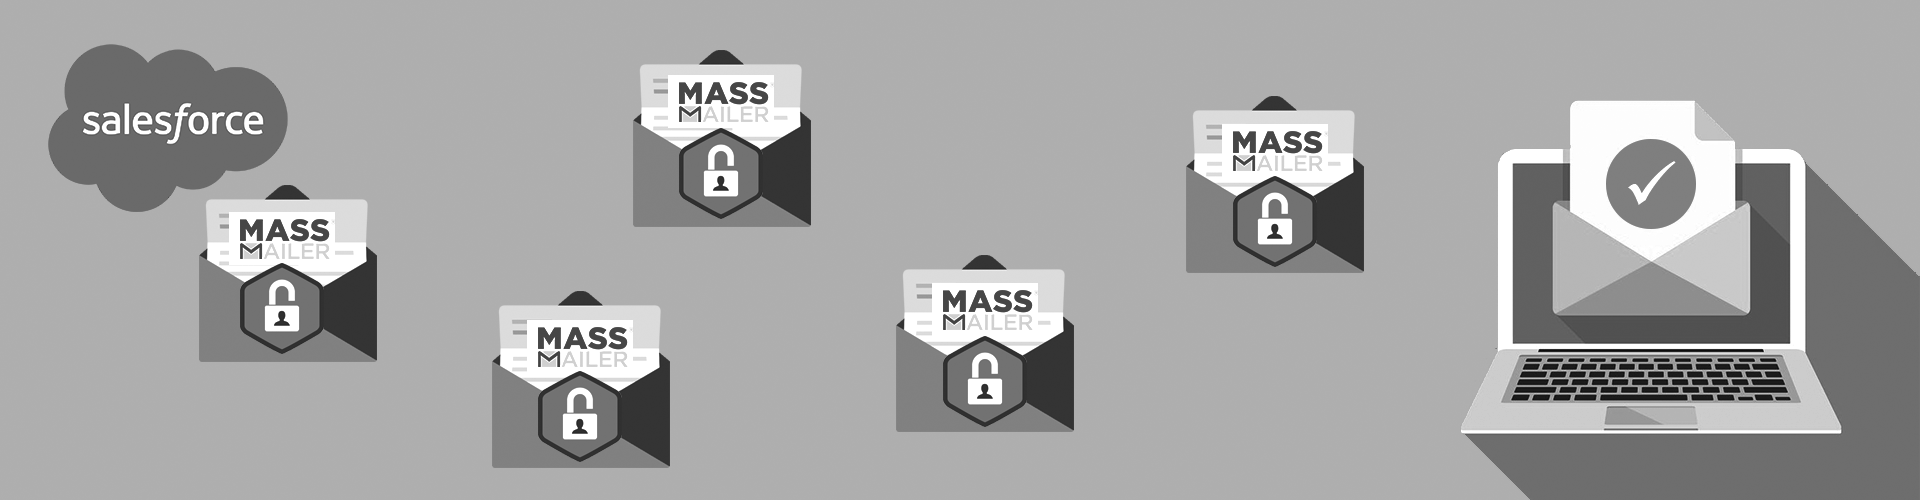 Don't let your Salesforce emails marked as Spam - MassMailer